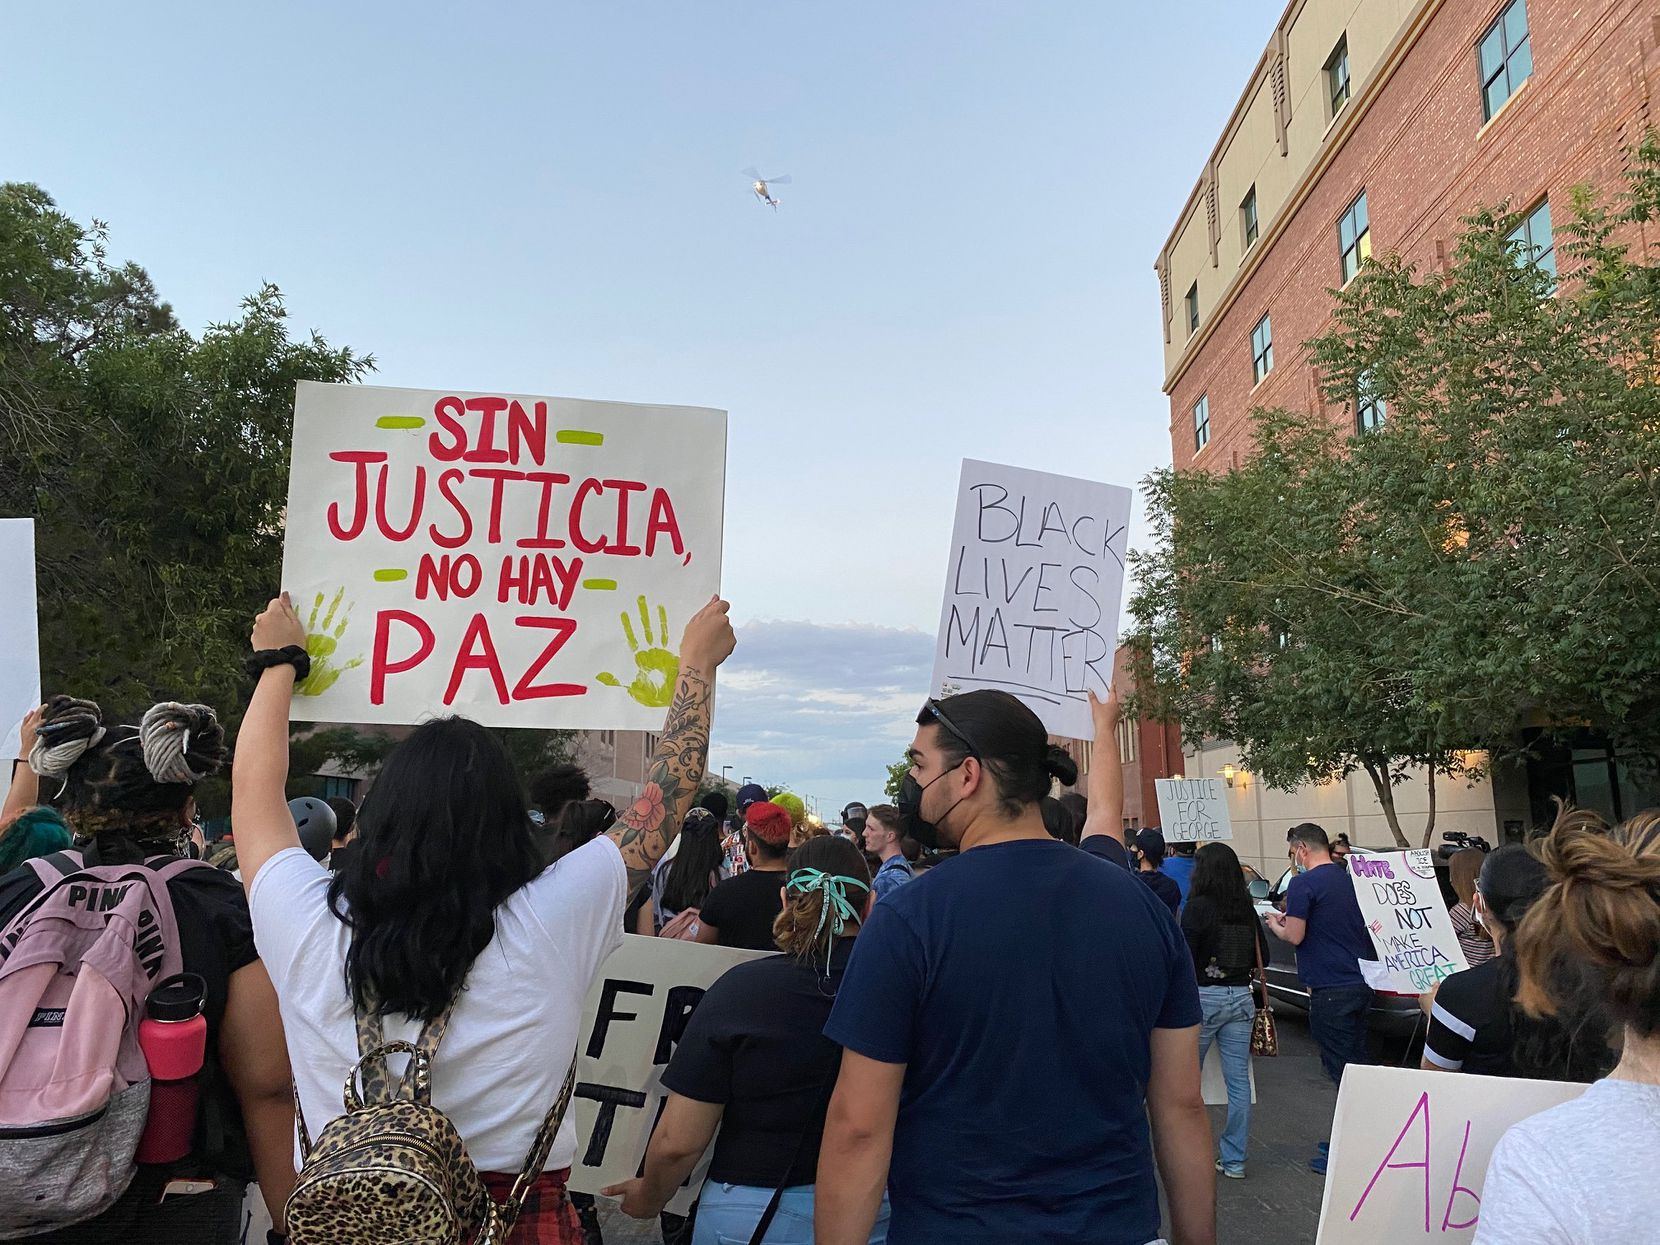 More than 150 peaceful protesters in El Paso turned out on June 2 to condemn the killing of George Floyd over a thousand miles away, drawing attention to parallel injustices on the border.